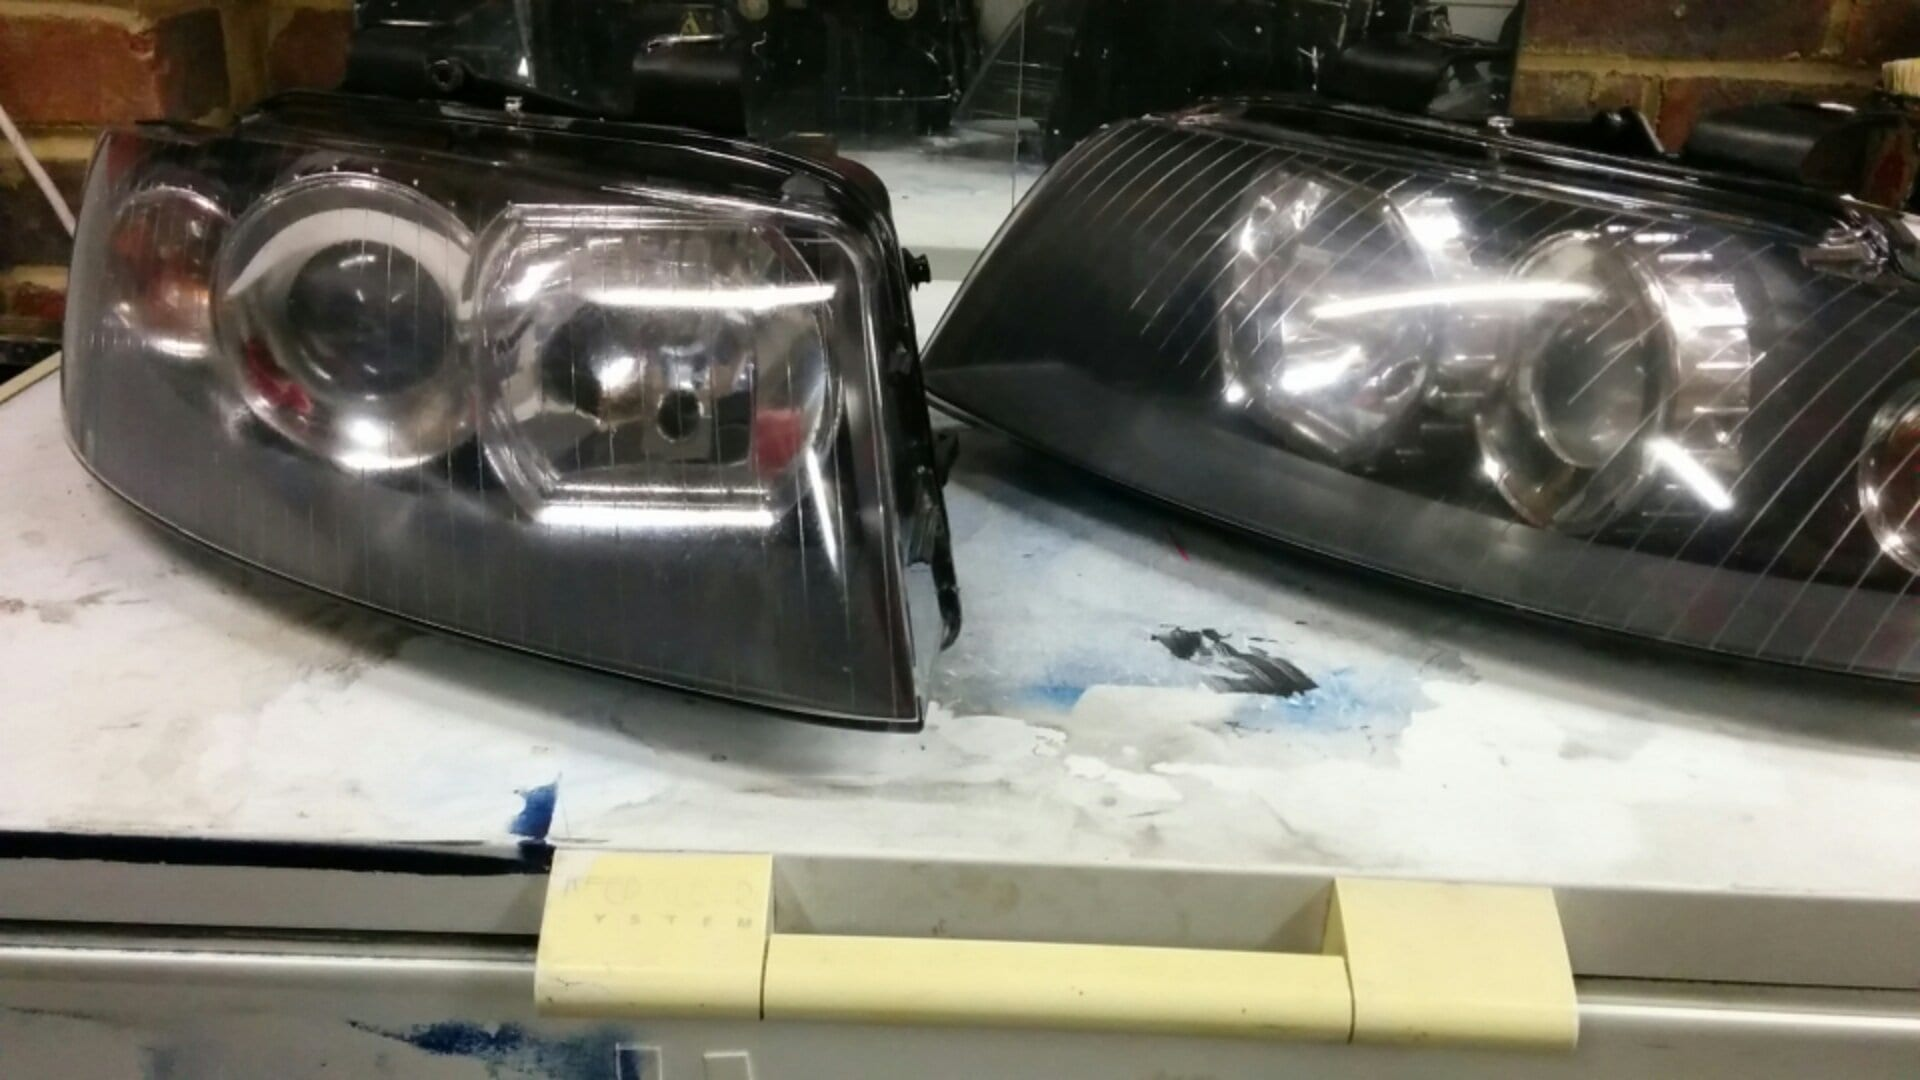 lighting hid ballast headlight lights in styling from bulbs ducati xenon moto item kit car automobiles for motorcycle